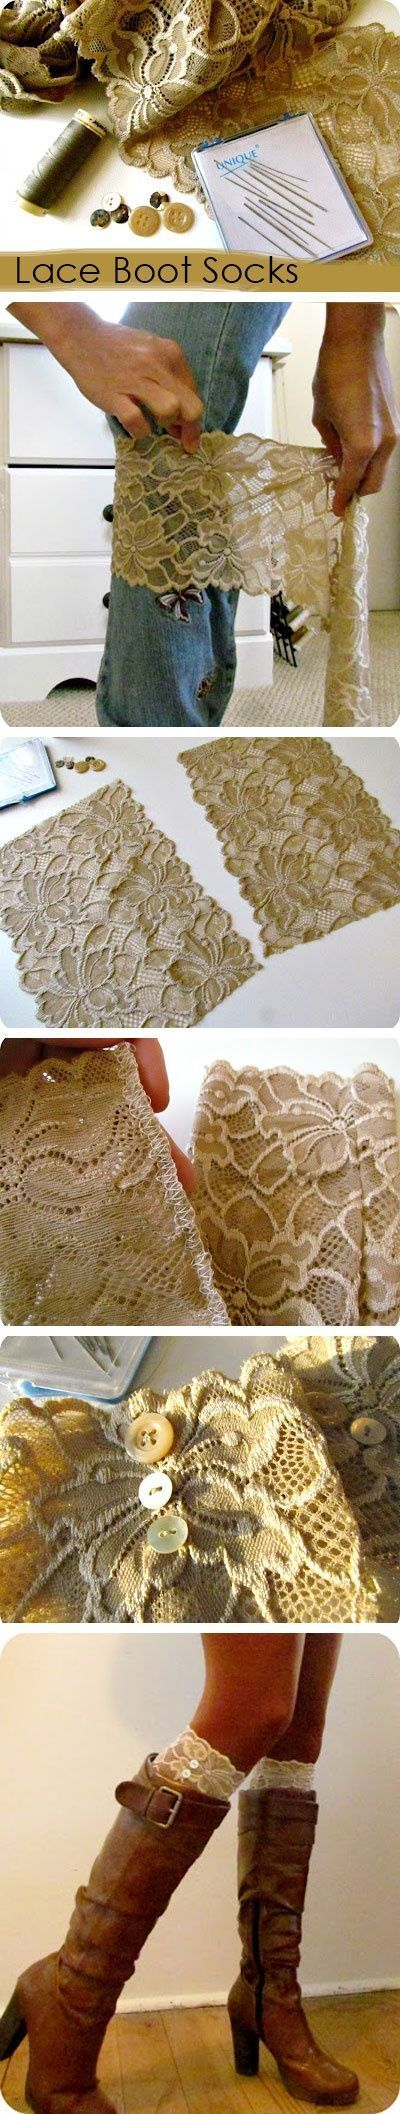 DIY Lace boot socks ~~ want to make some of these!